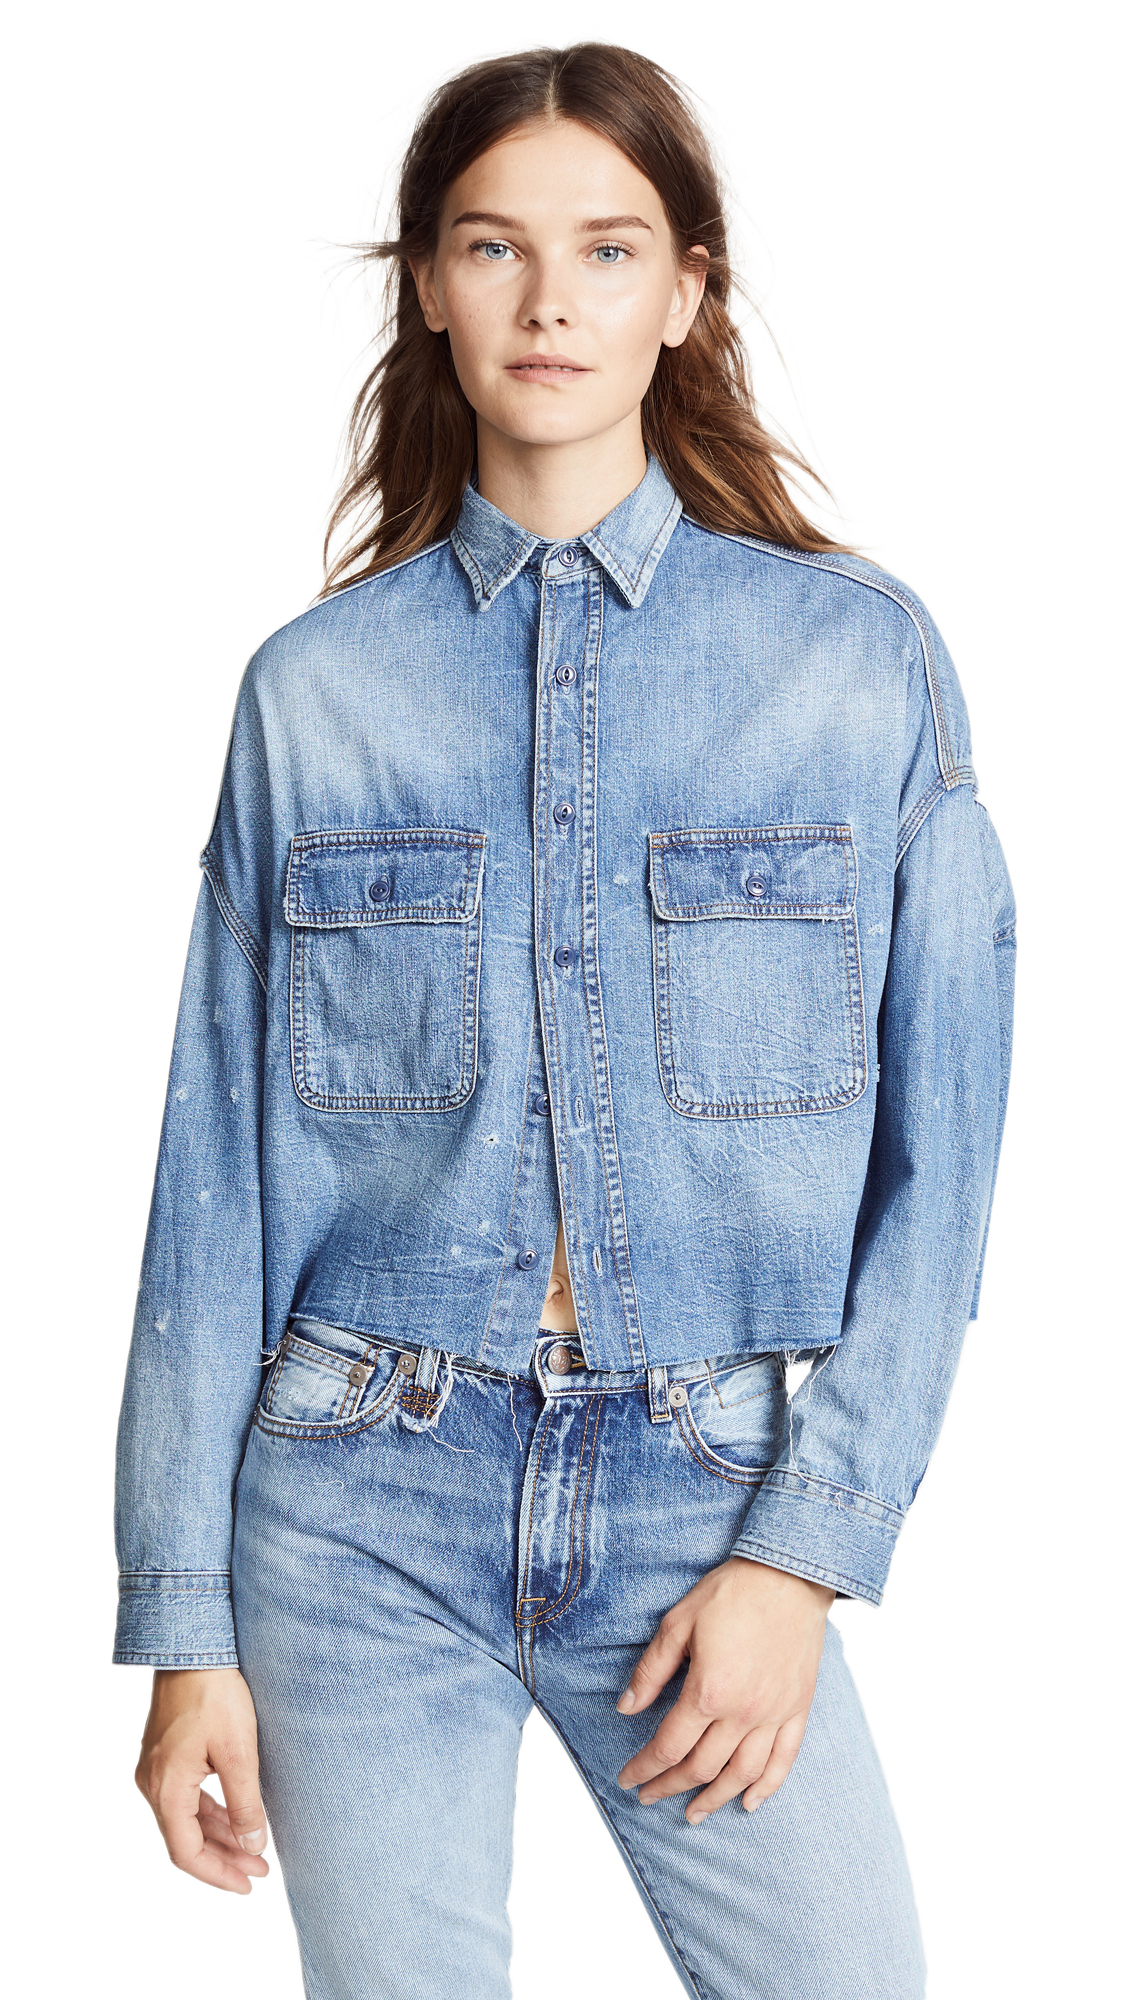 R13 Cropped Denim Shirt In Brindley